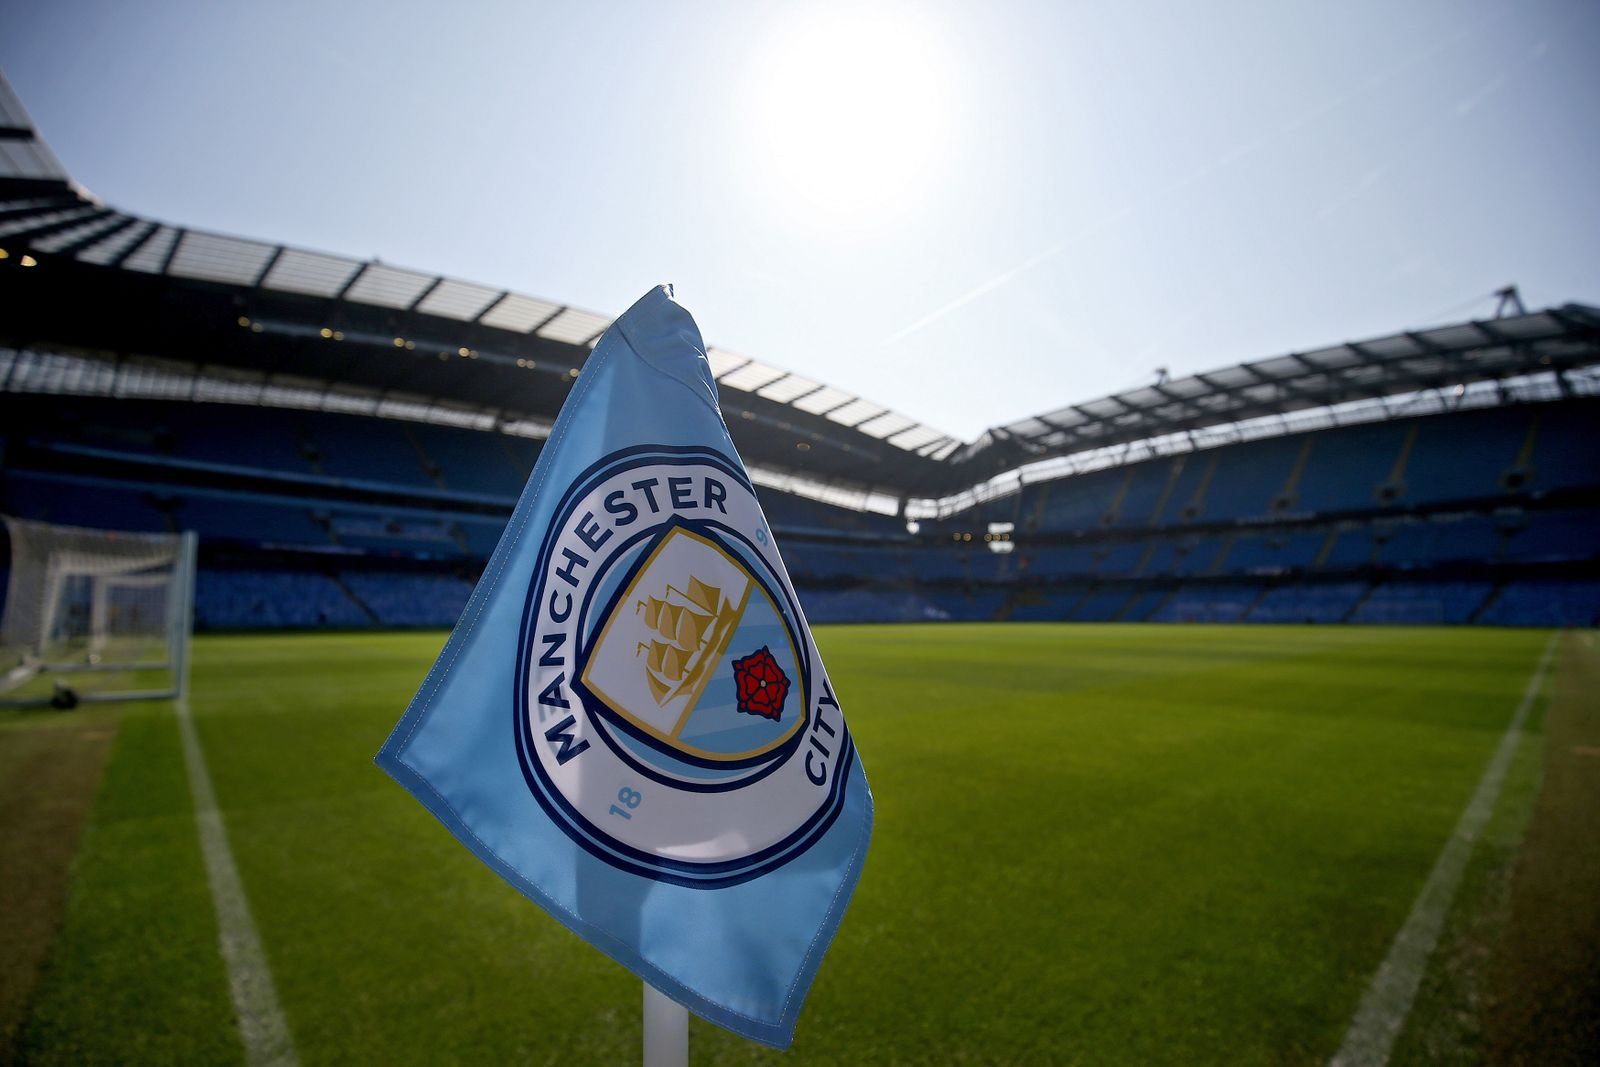 CAS lifts Champions League ban for Manchester City, United Kingdom - 01 Sep 2018